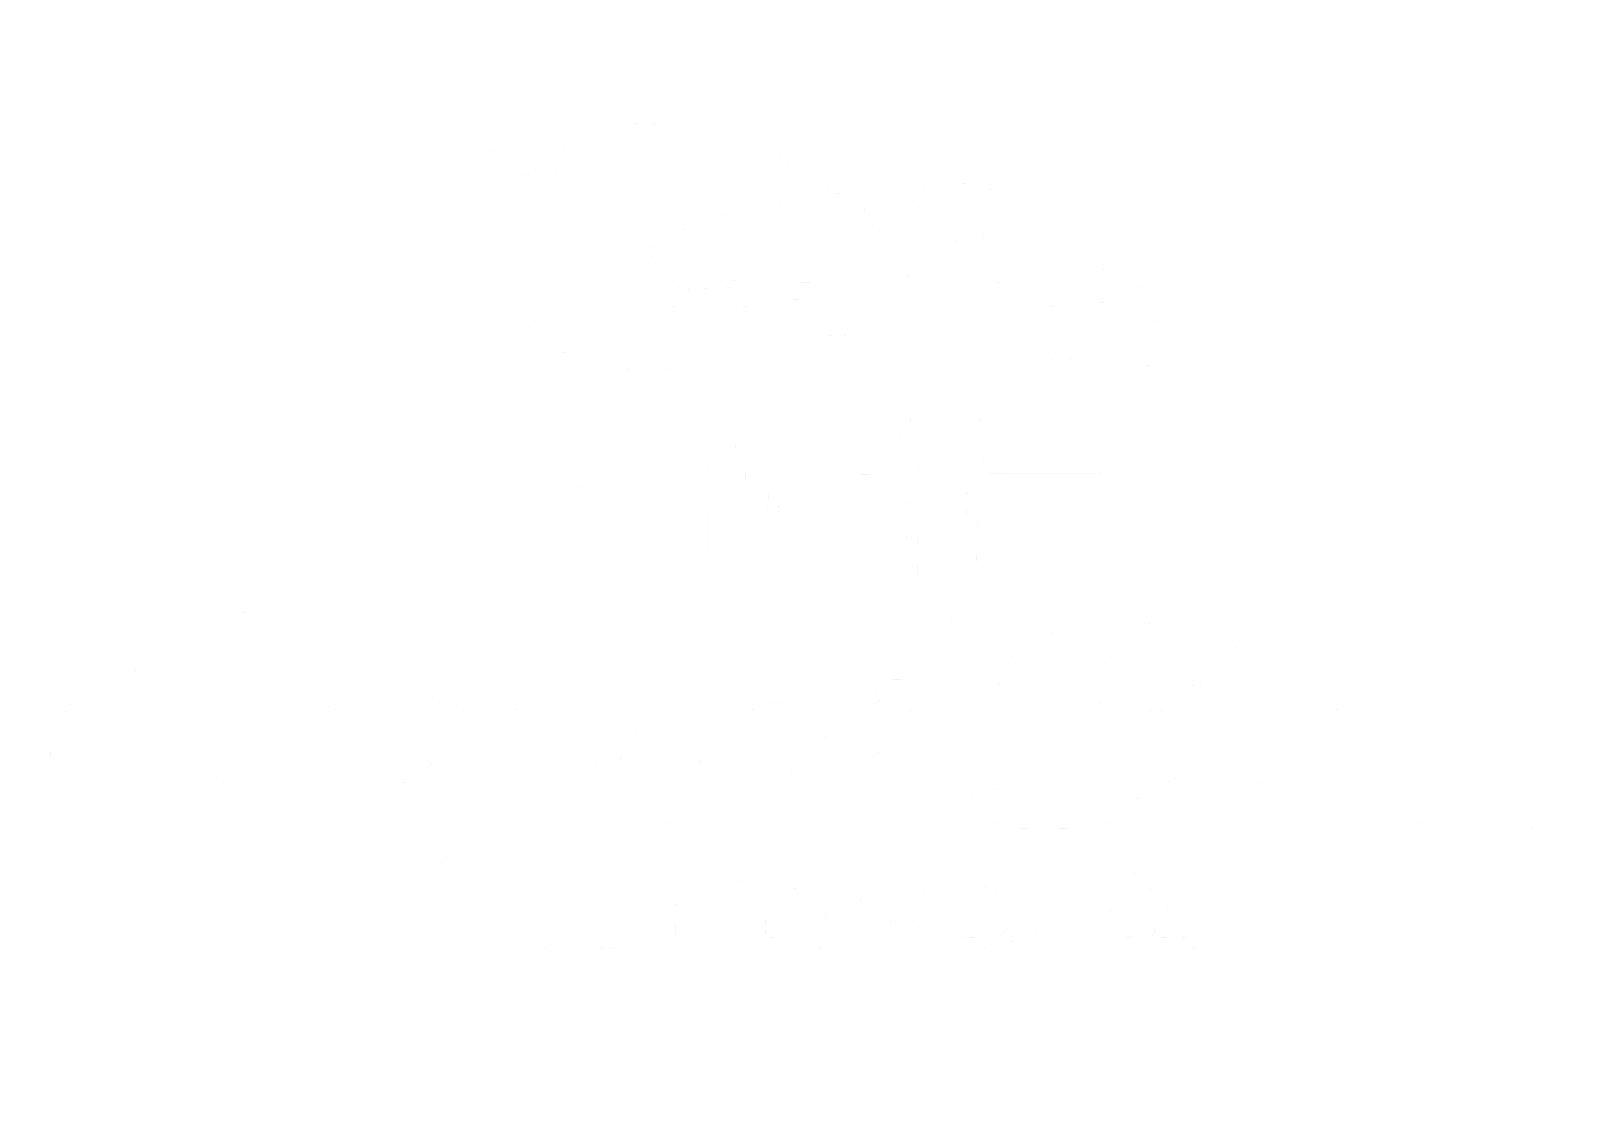 Opinions - Caniço Bay Apartments